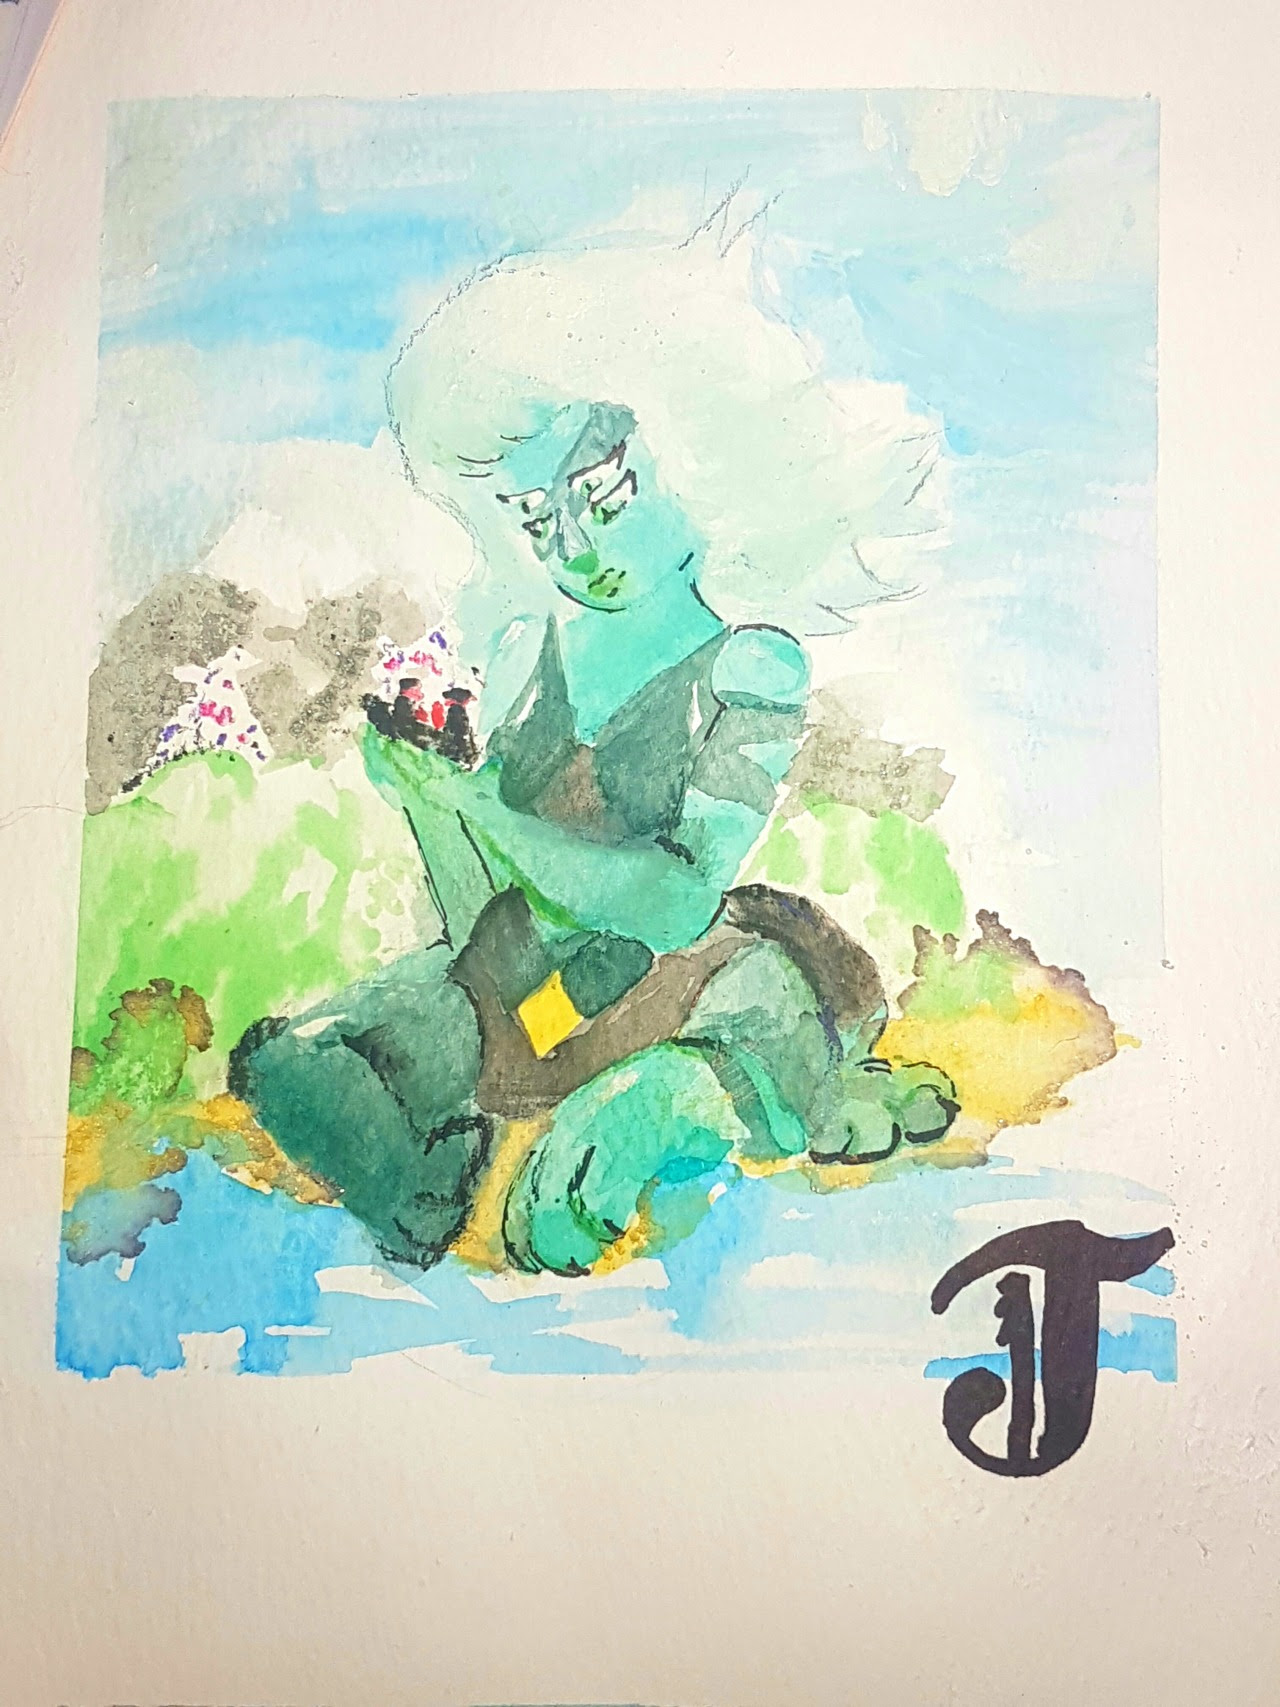 Gentle malachite on watermelon island